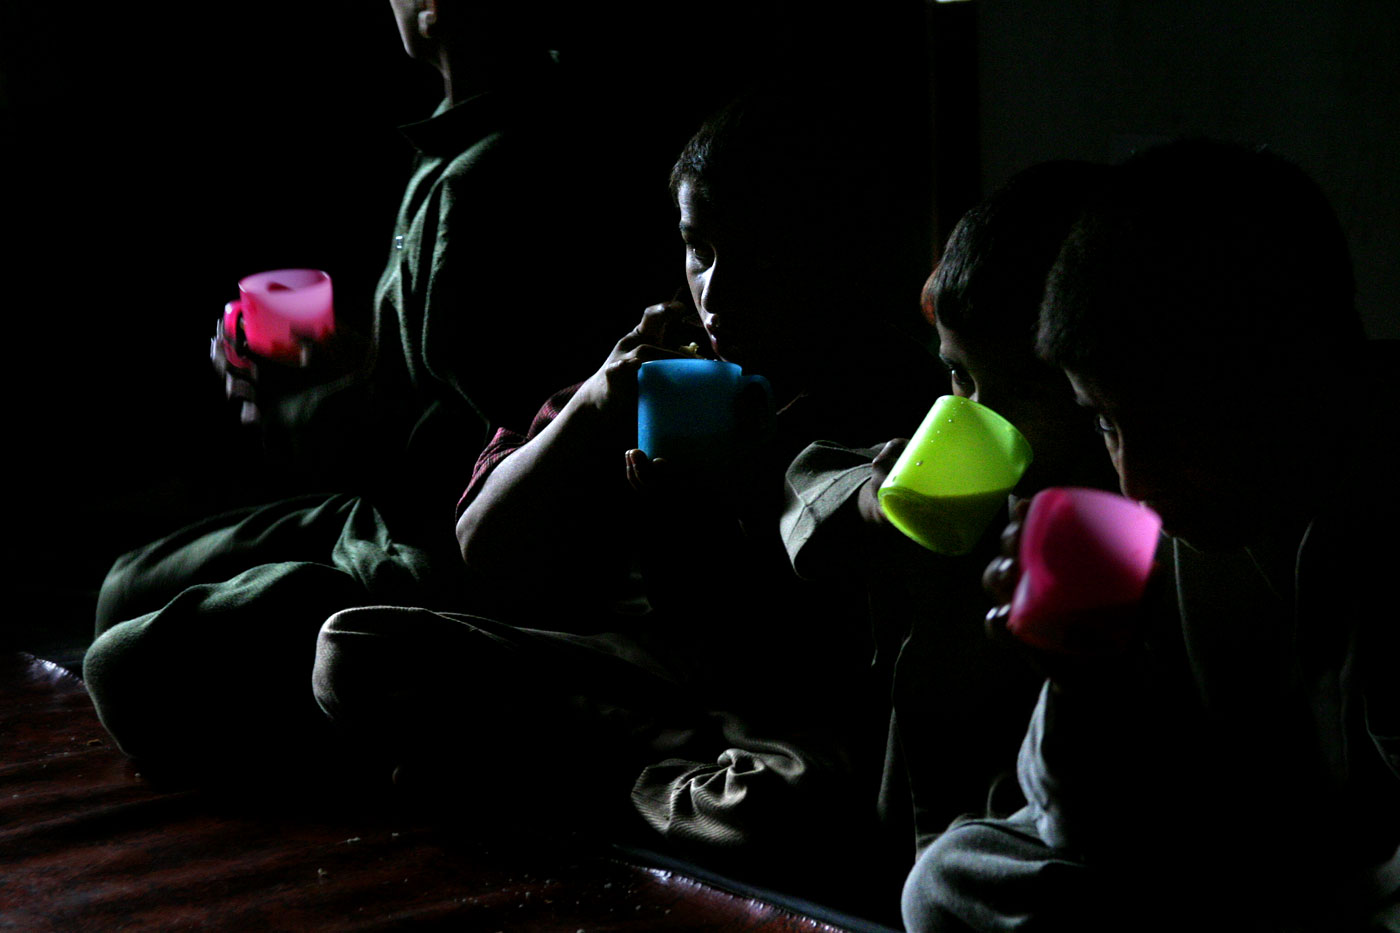 Light pours in and is highlighted in the colored cups the children use for an afternoon snack and drink.